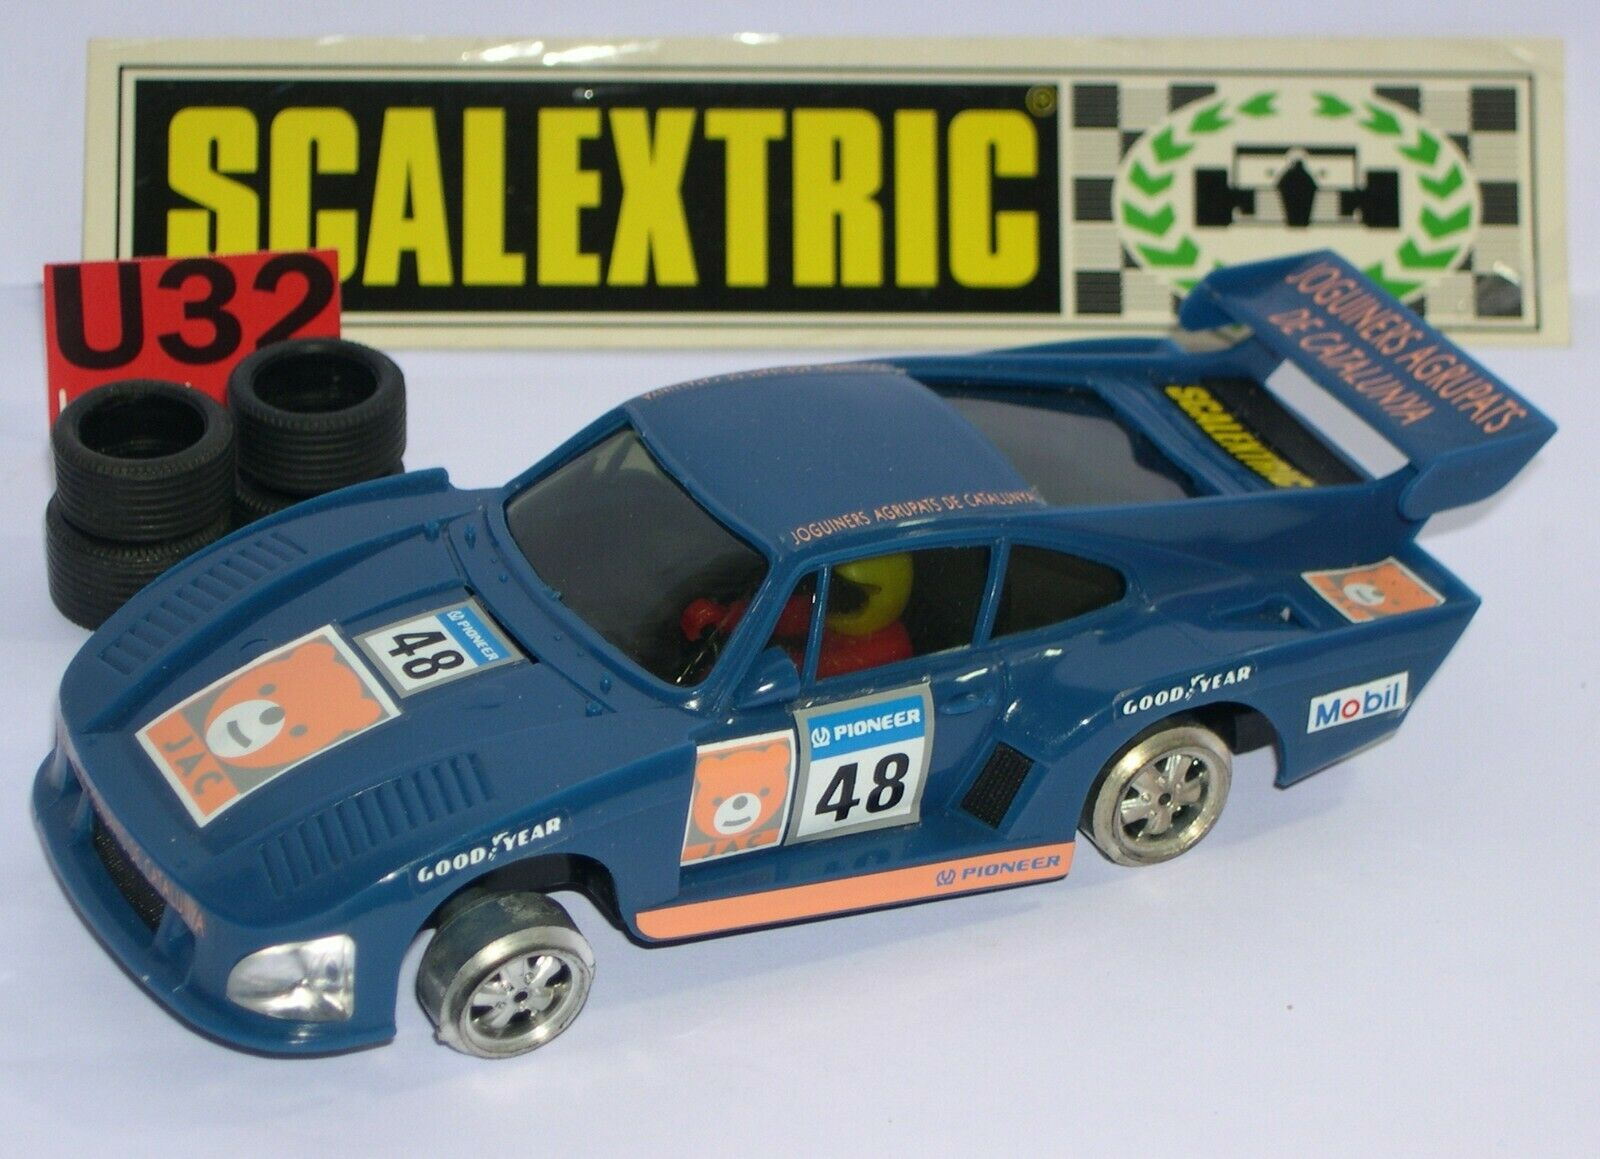 SCALEXTRIC EXIN 8356 PORSCHE 935 JAC LTED. ED. EXCELLENT CONDITION